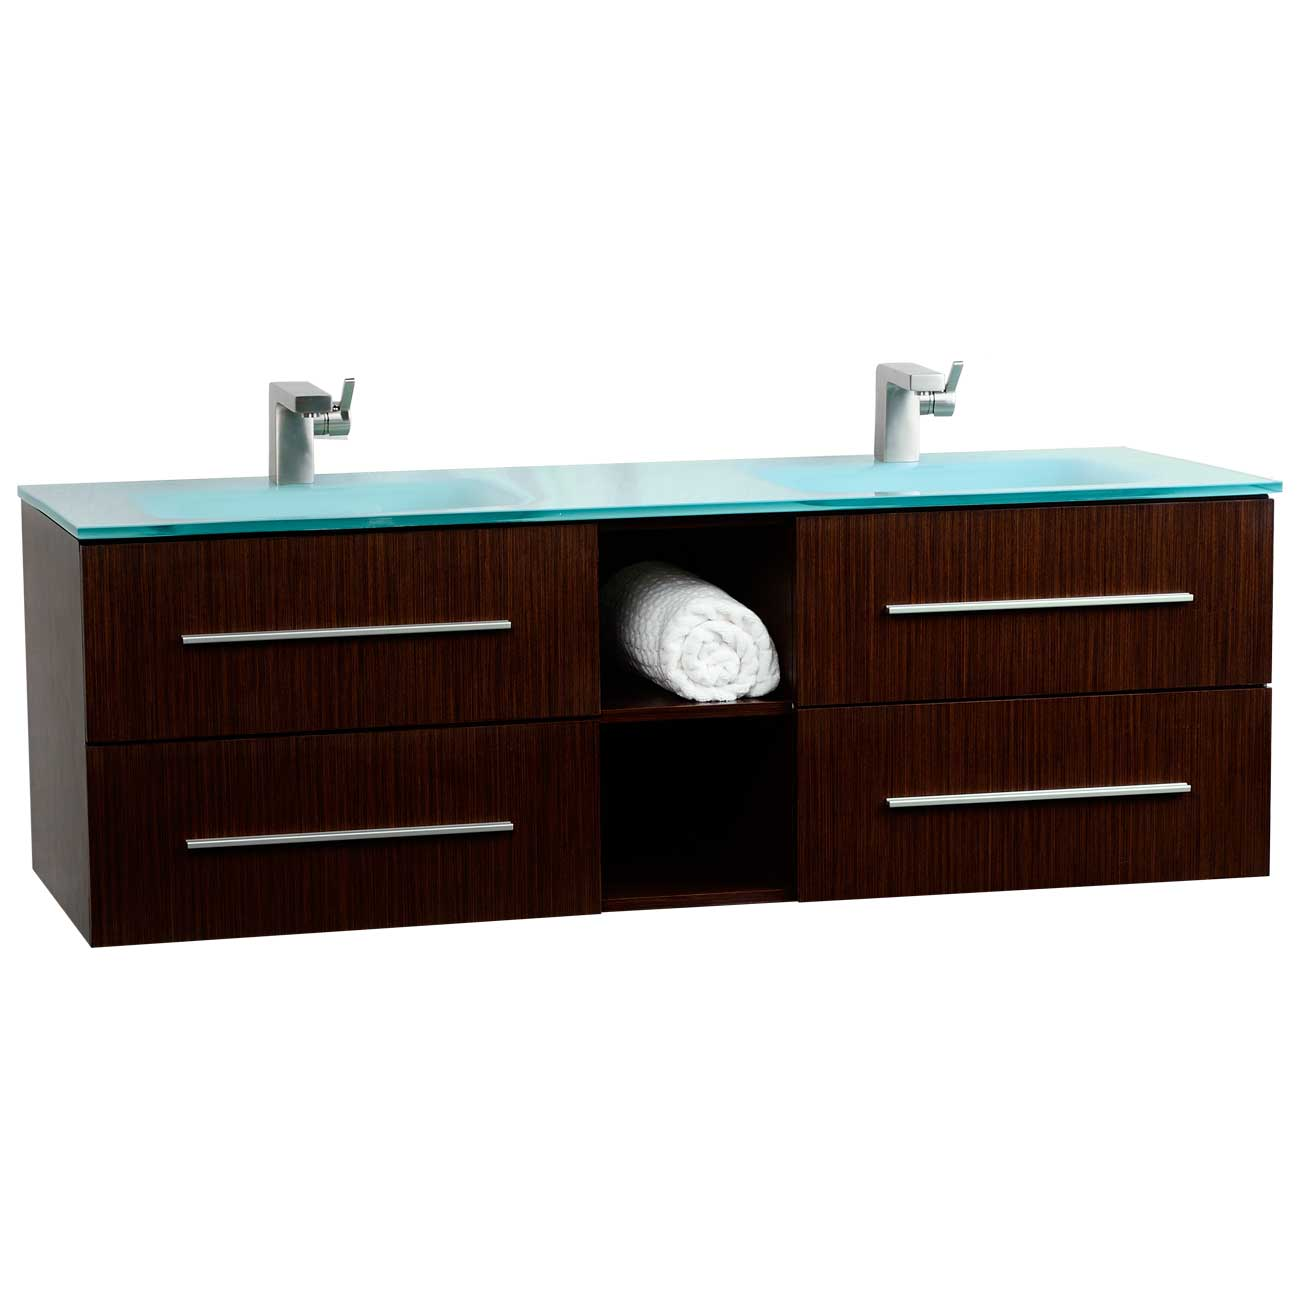 "Bathroom Vanity Glass Top savona 60"" wall-mounted double bathroom vanity set vm-v18183-irw"